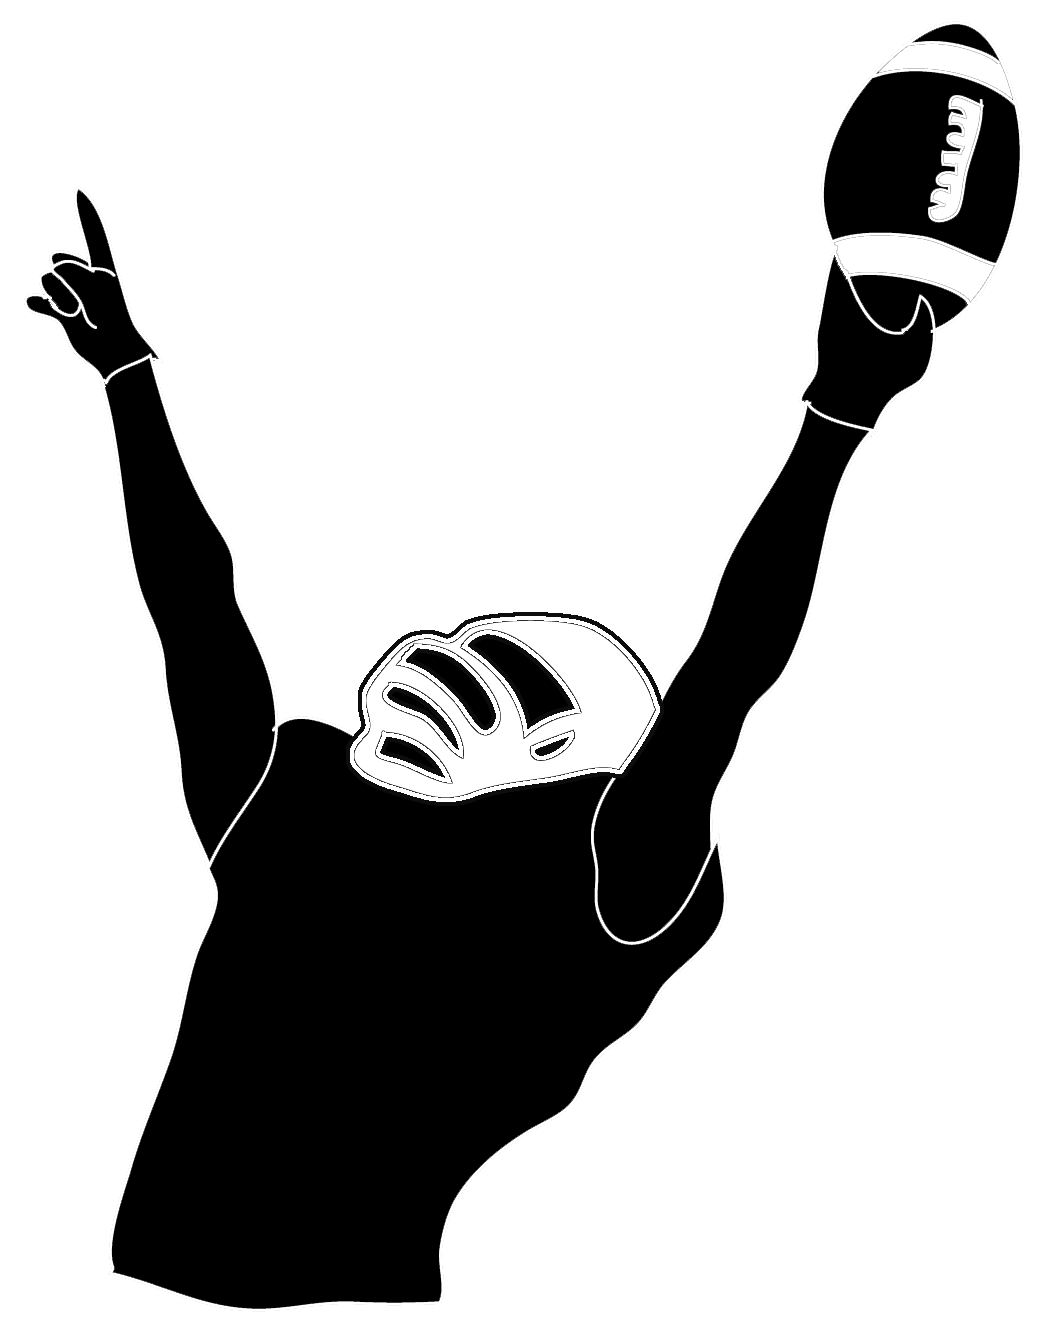 Nfl football player silhouette png. Victory vinyl projects pinterest